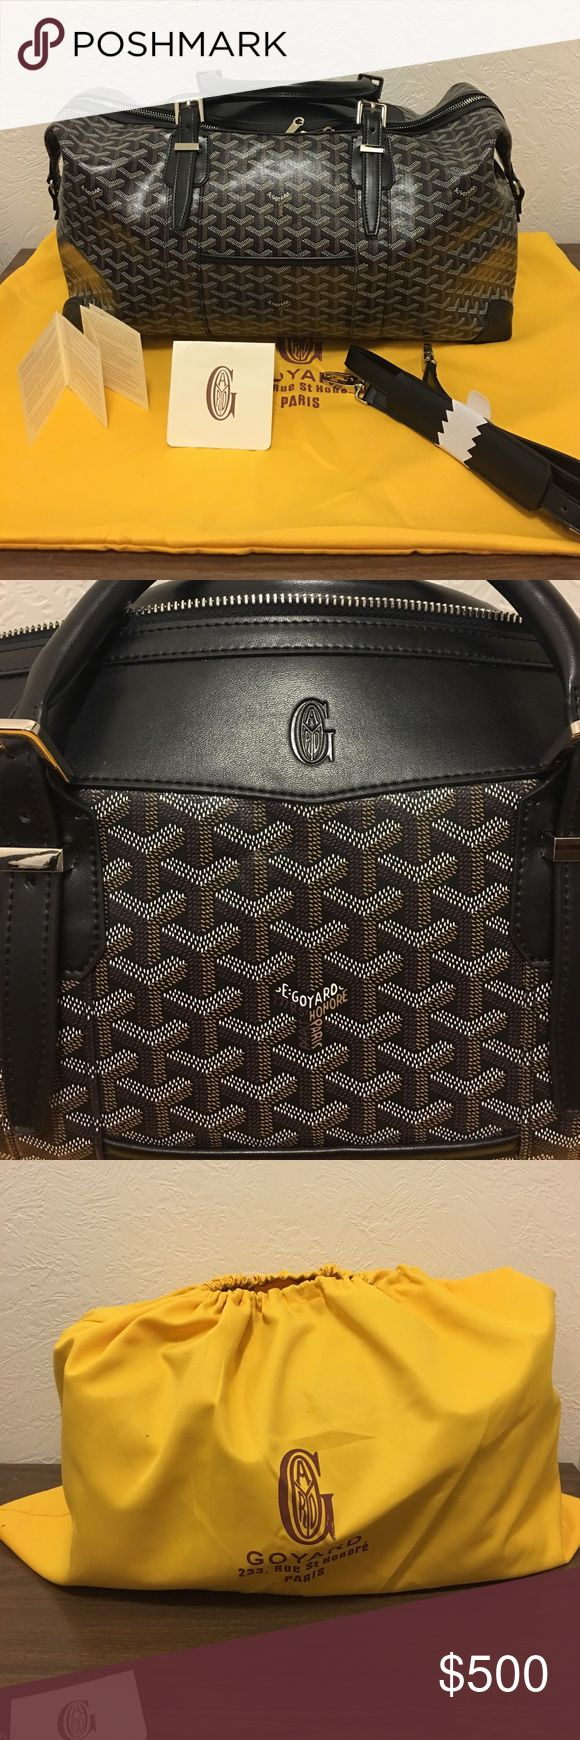 Replica goyard Boeing bag 1:1 with dust bag Brand new goyard weekender Boeing bag. It's 1:1 down to a serial number stamp inside it and engraved feet on the bottom. Has papers, strap, dust bag, bag itself. It's a 2 foot bag about a carry on size Goyard Bags Travel Bags